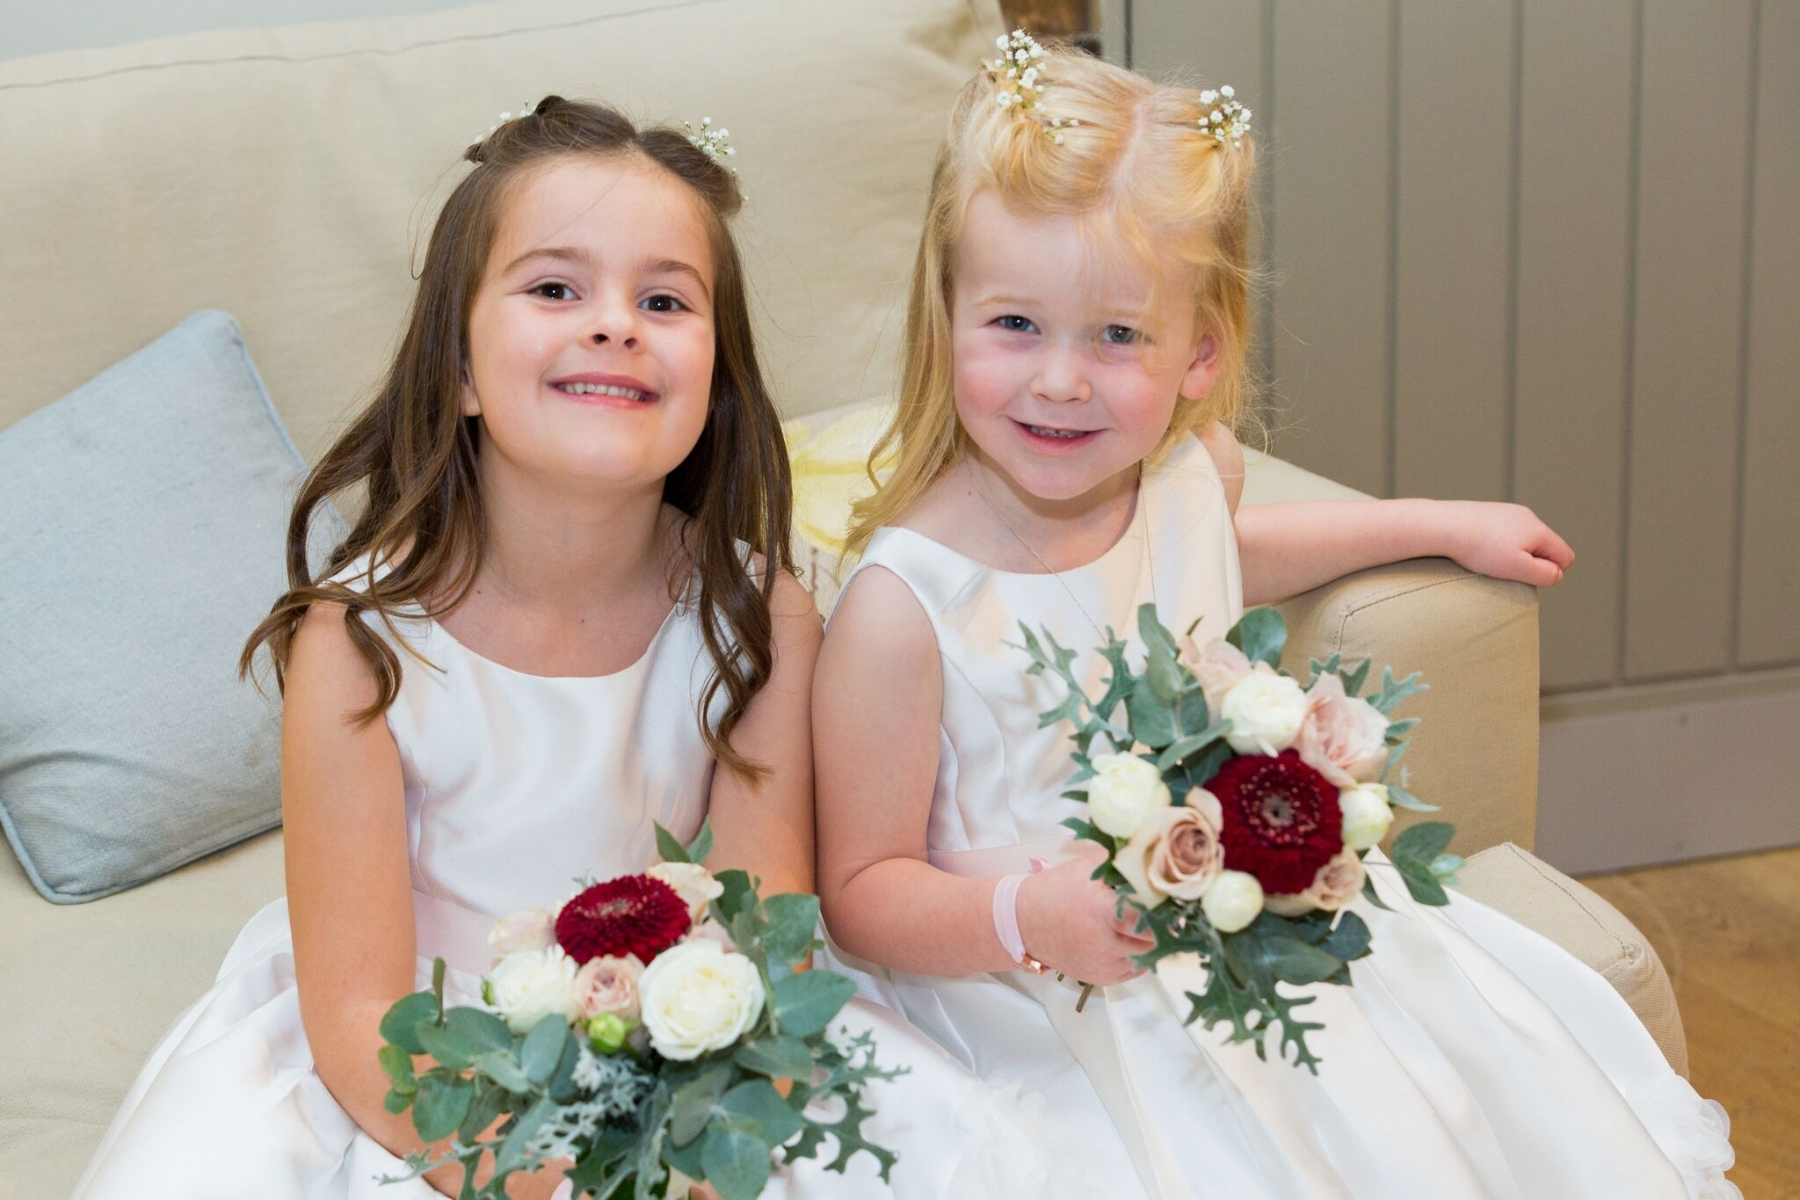 Suzi and Terry October 2017 - Flower Girls